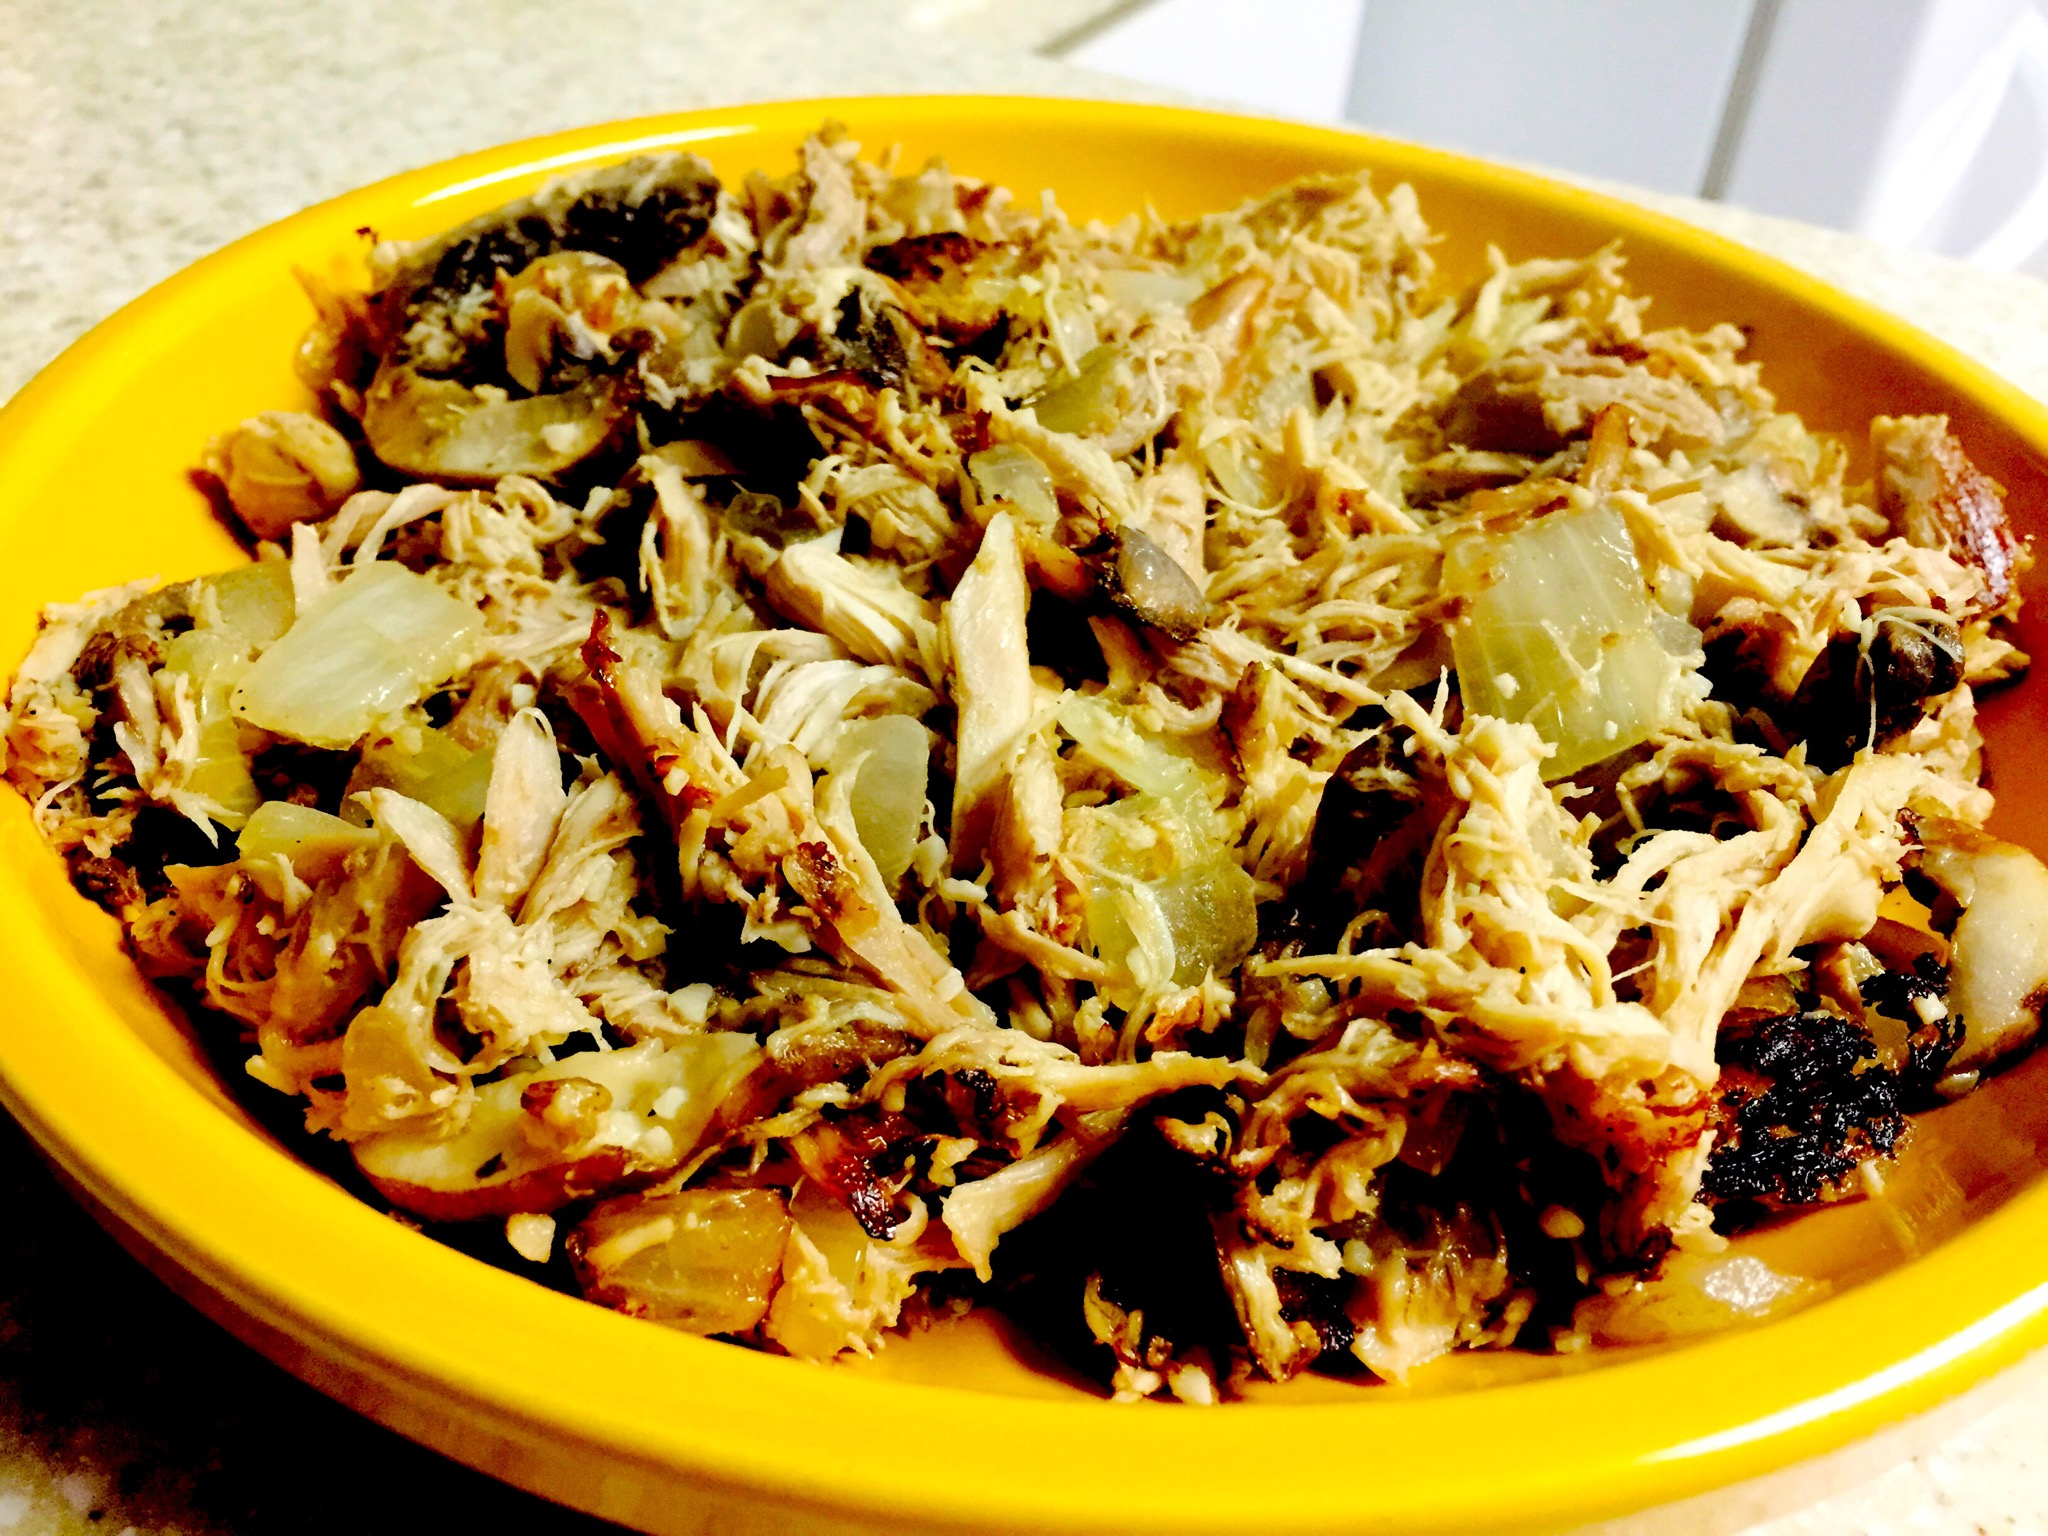 Roasted chicken with mushrooms and caramelized onions